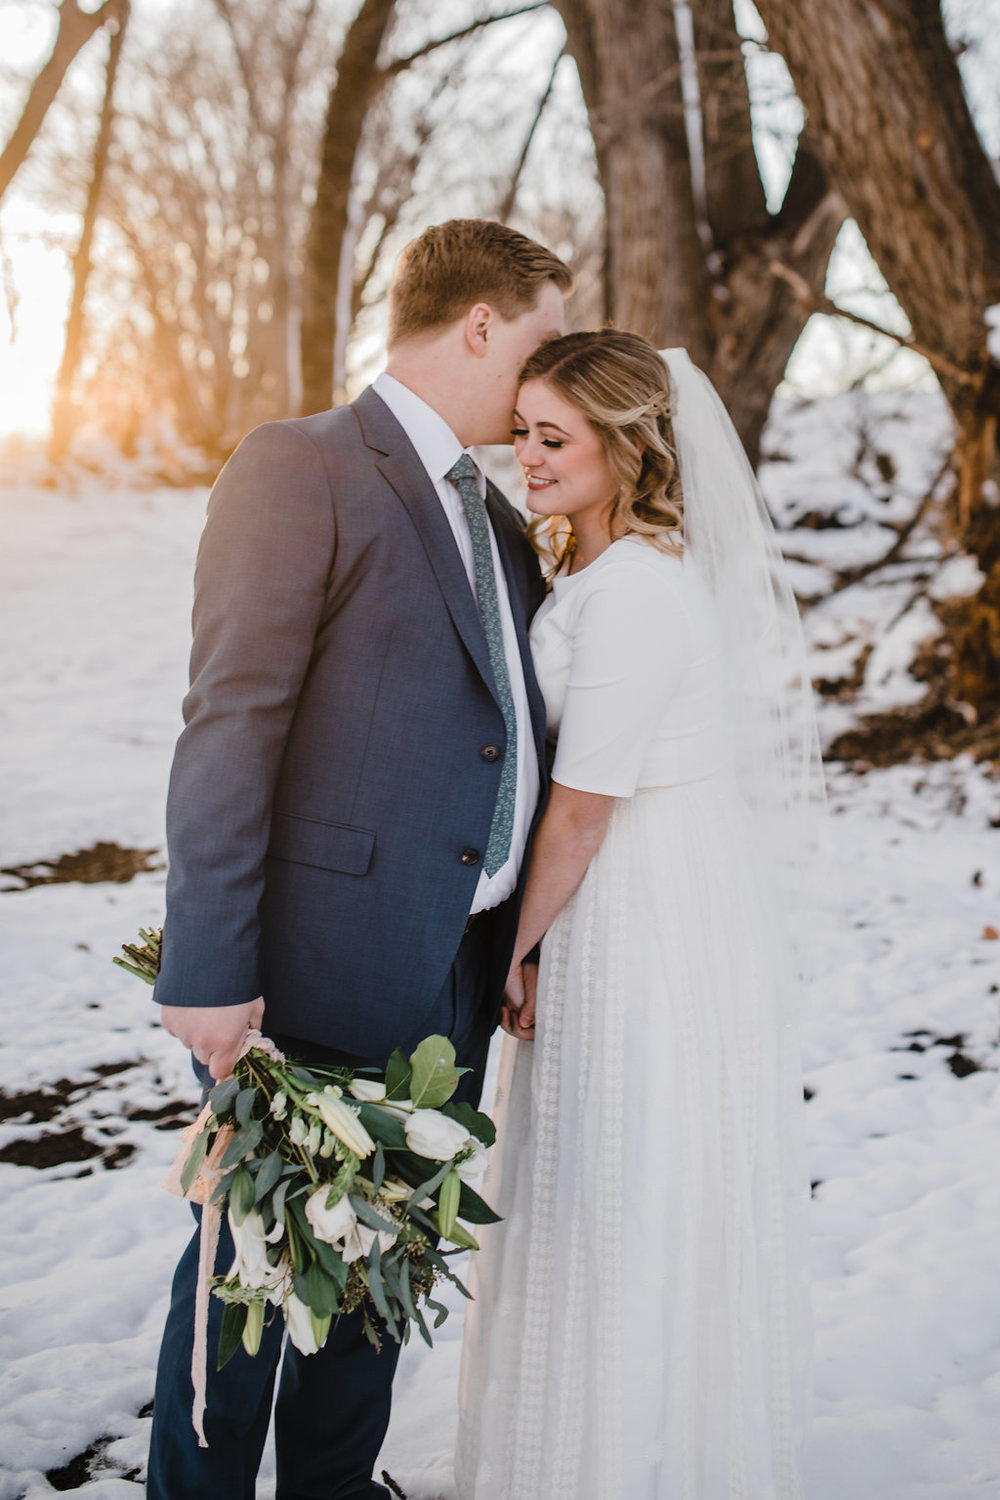 formals winter wedding inspiration logan ut calli richards